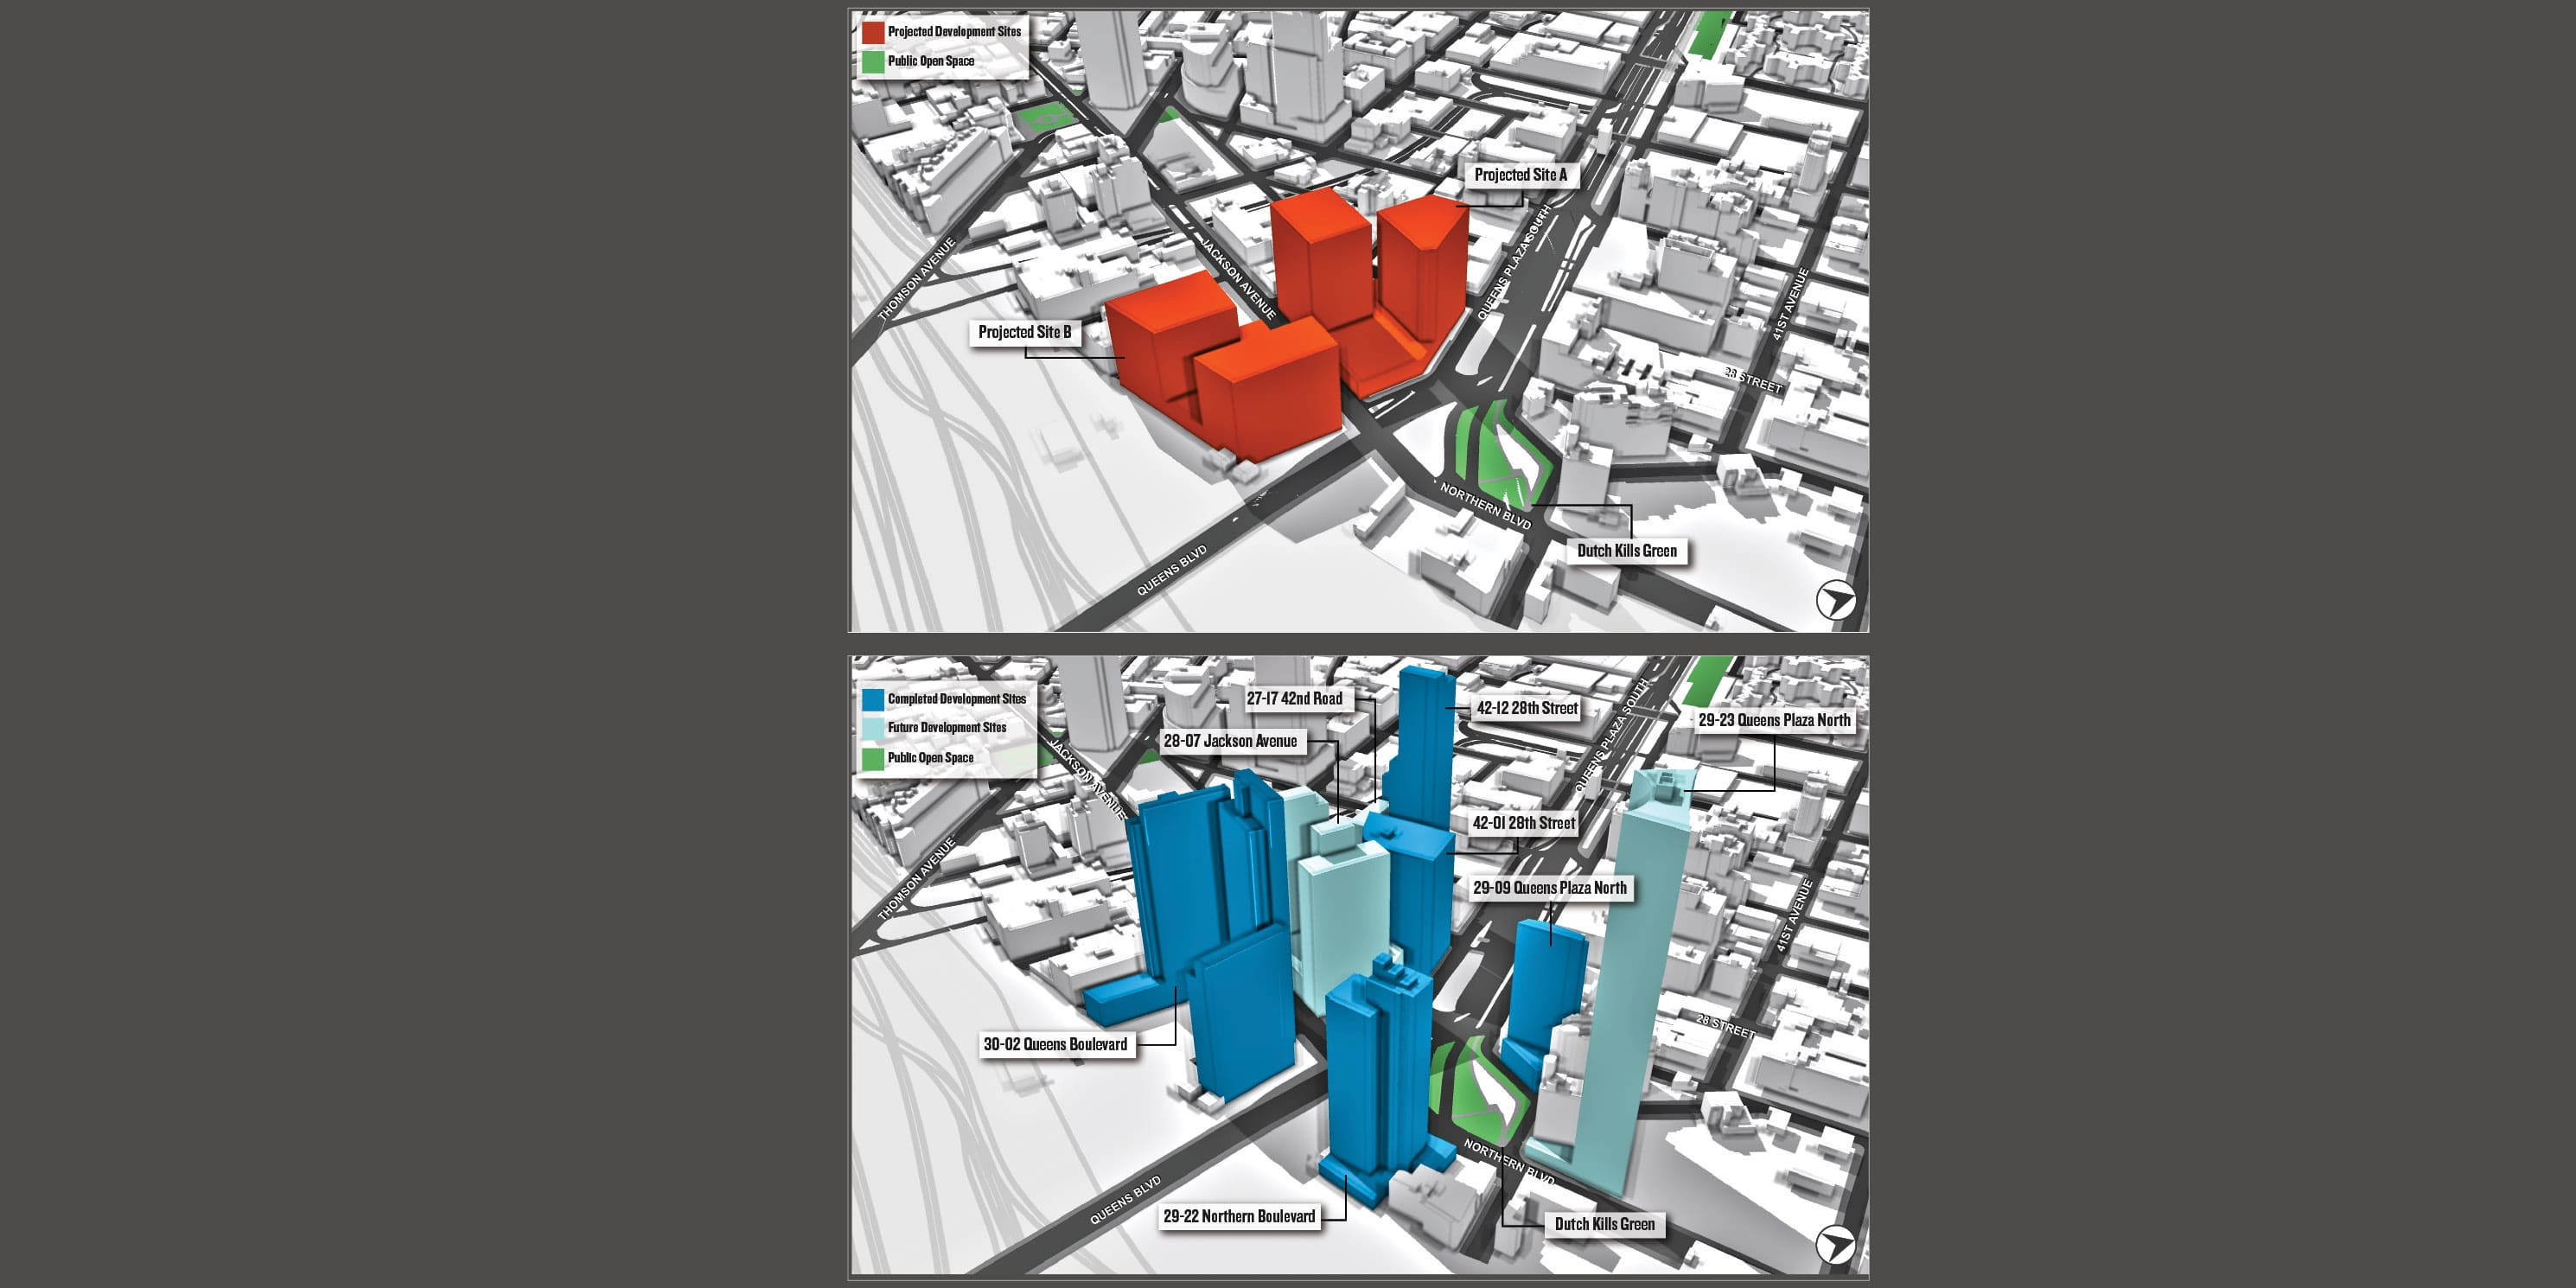 map of projected versus actual development in Long Island City